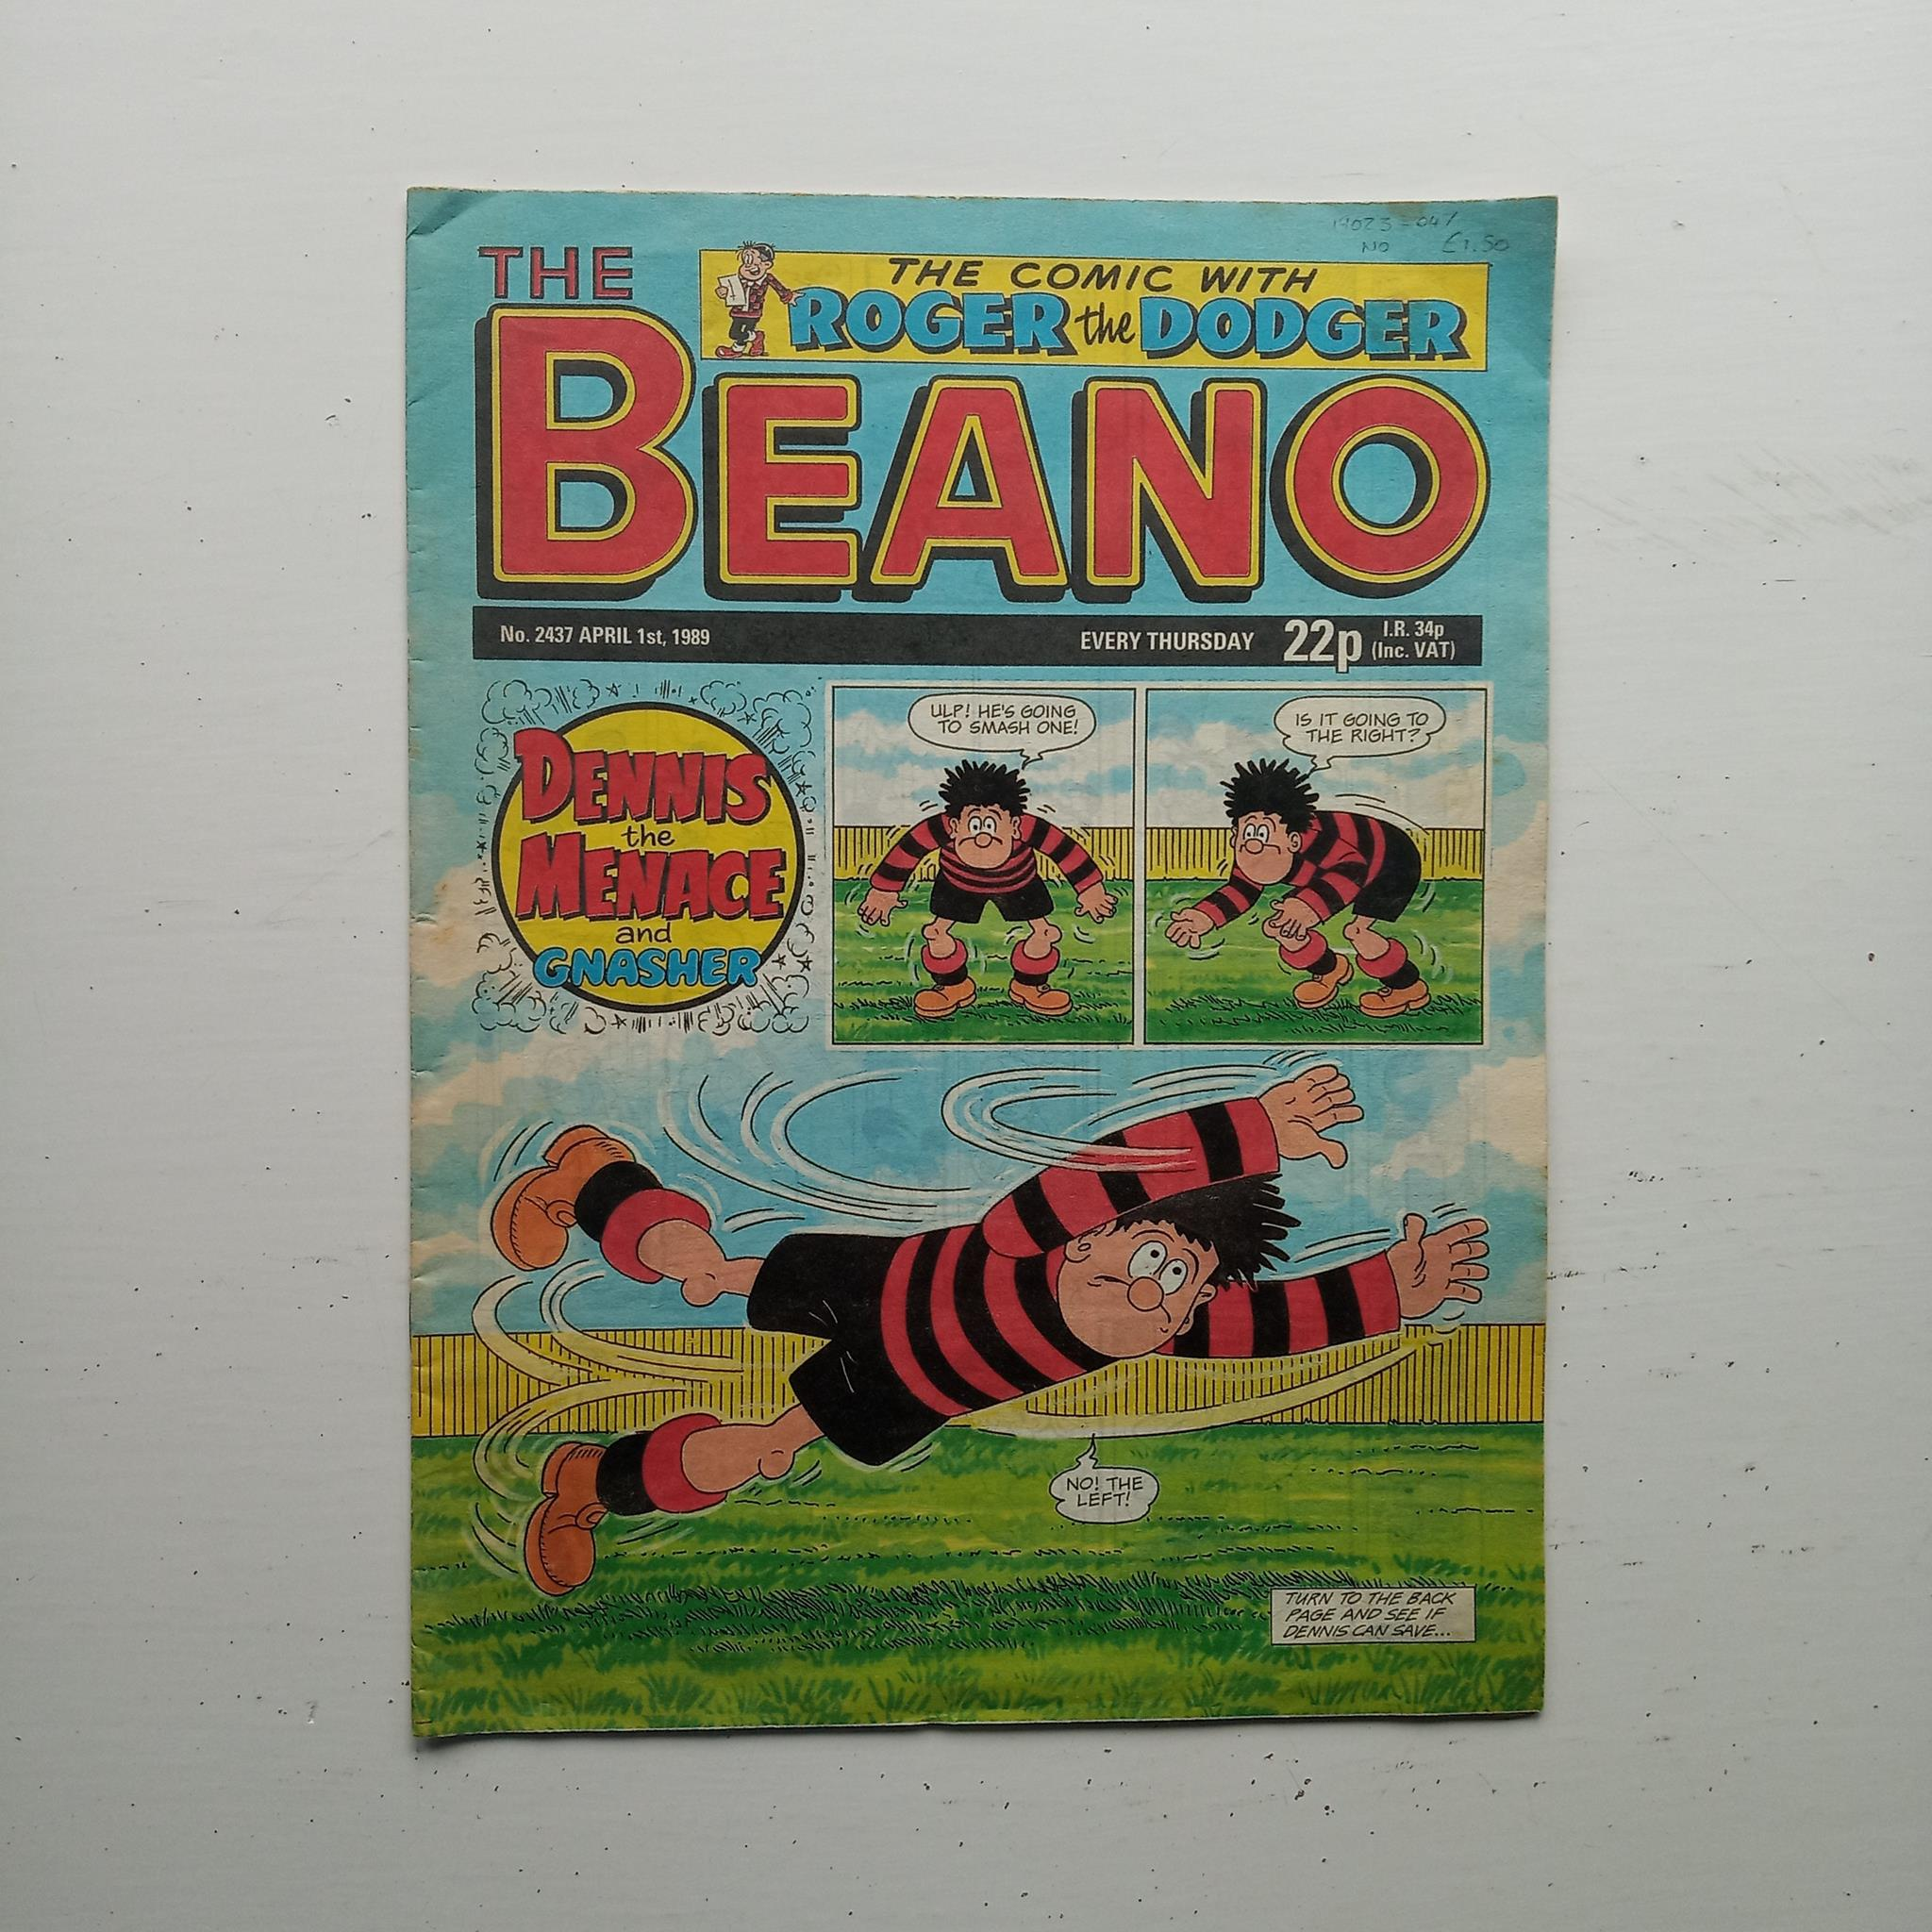 The Beano No 2437 by Uncredited